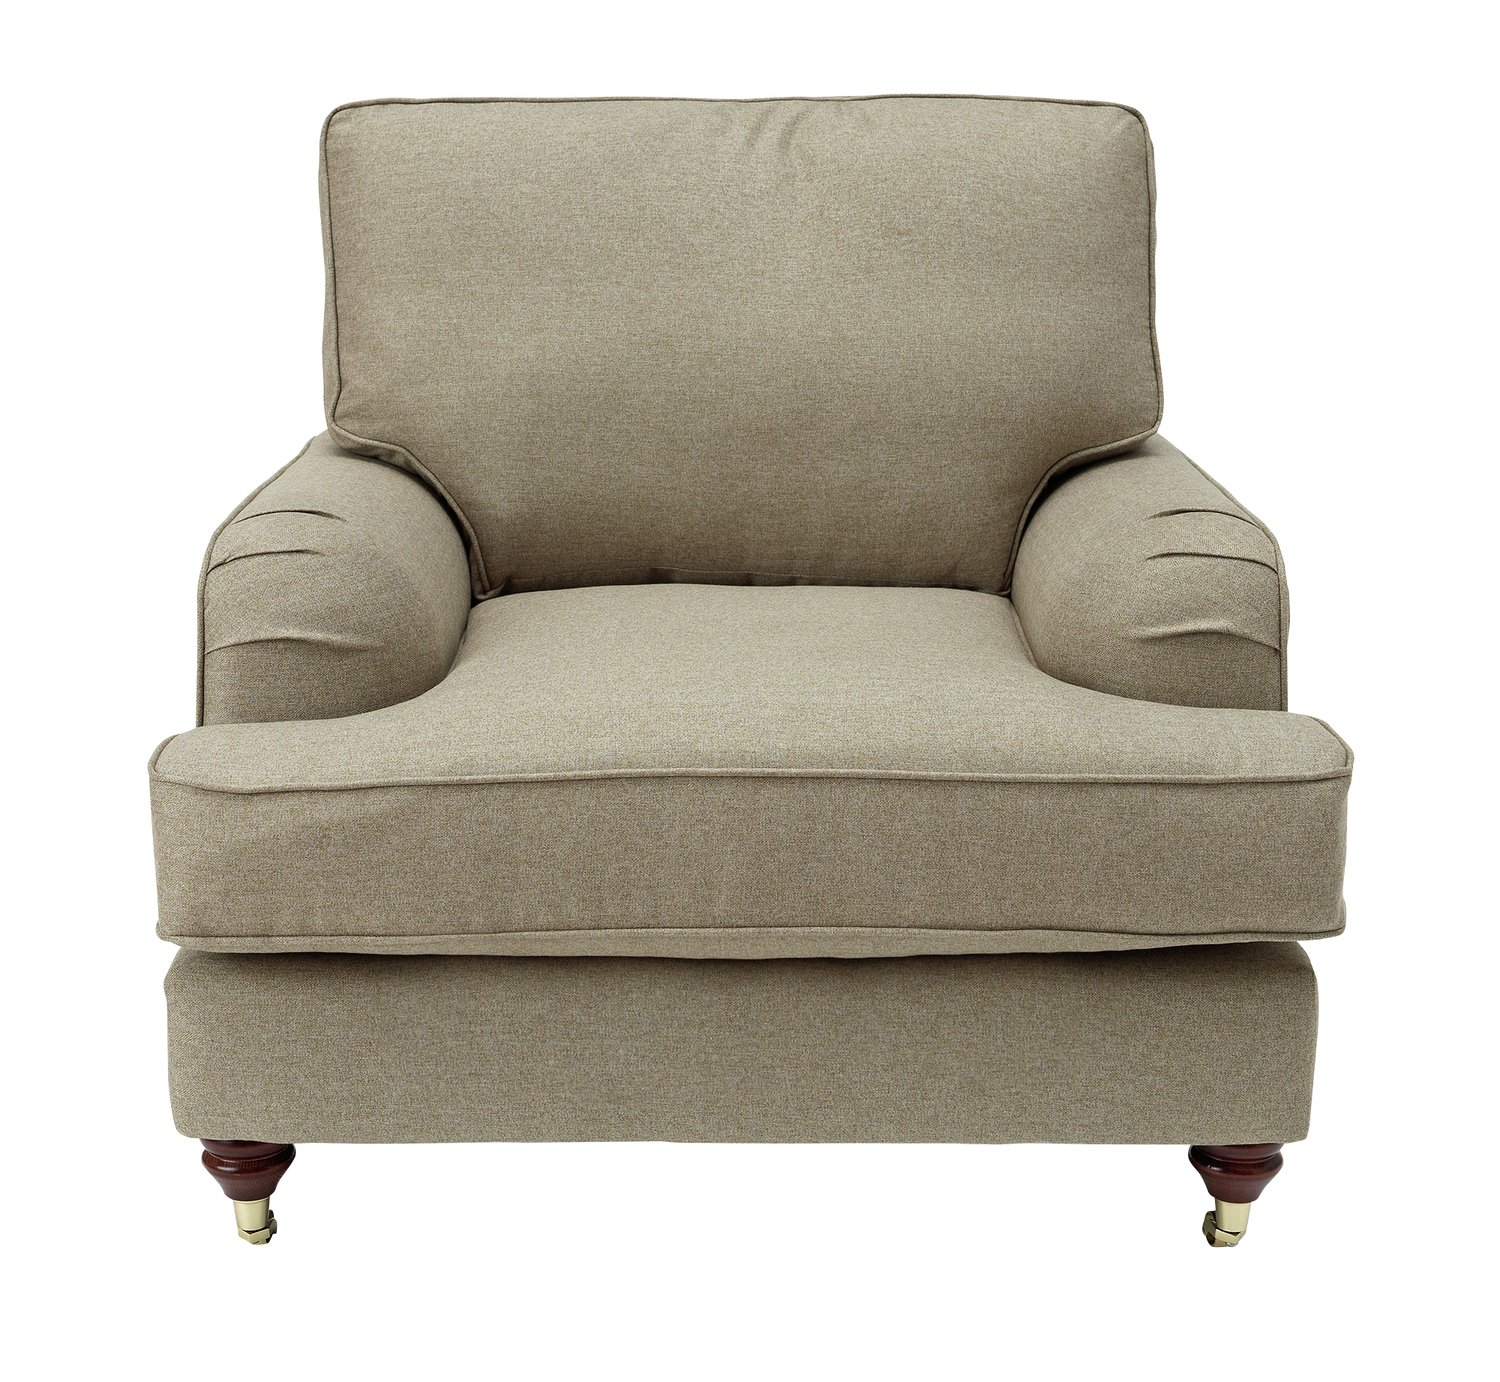 Argos Home Abberton Tweed Fabric Armchair - Natural